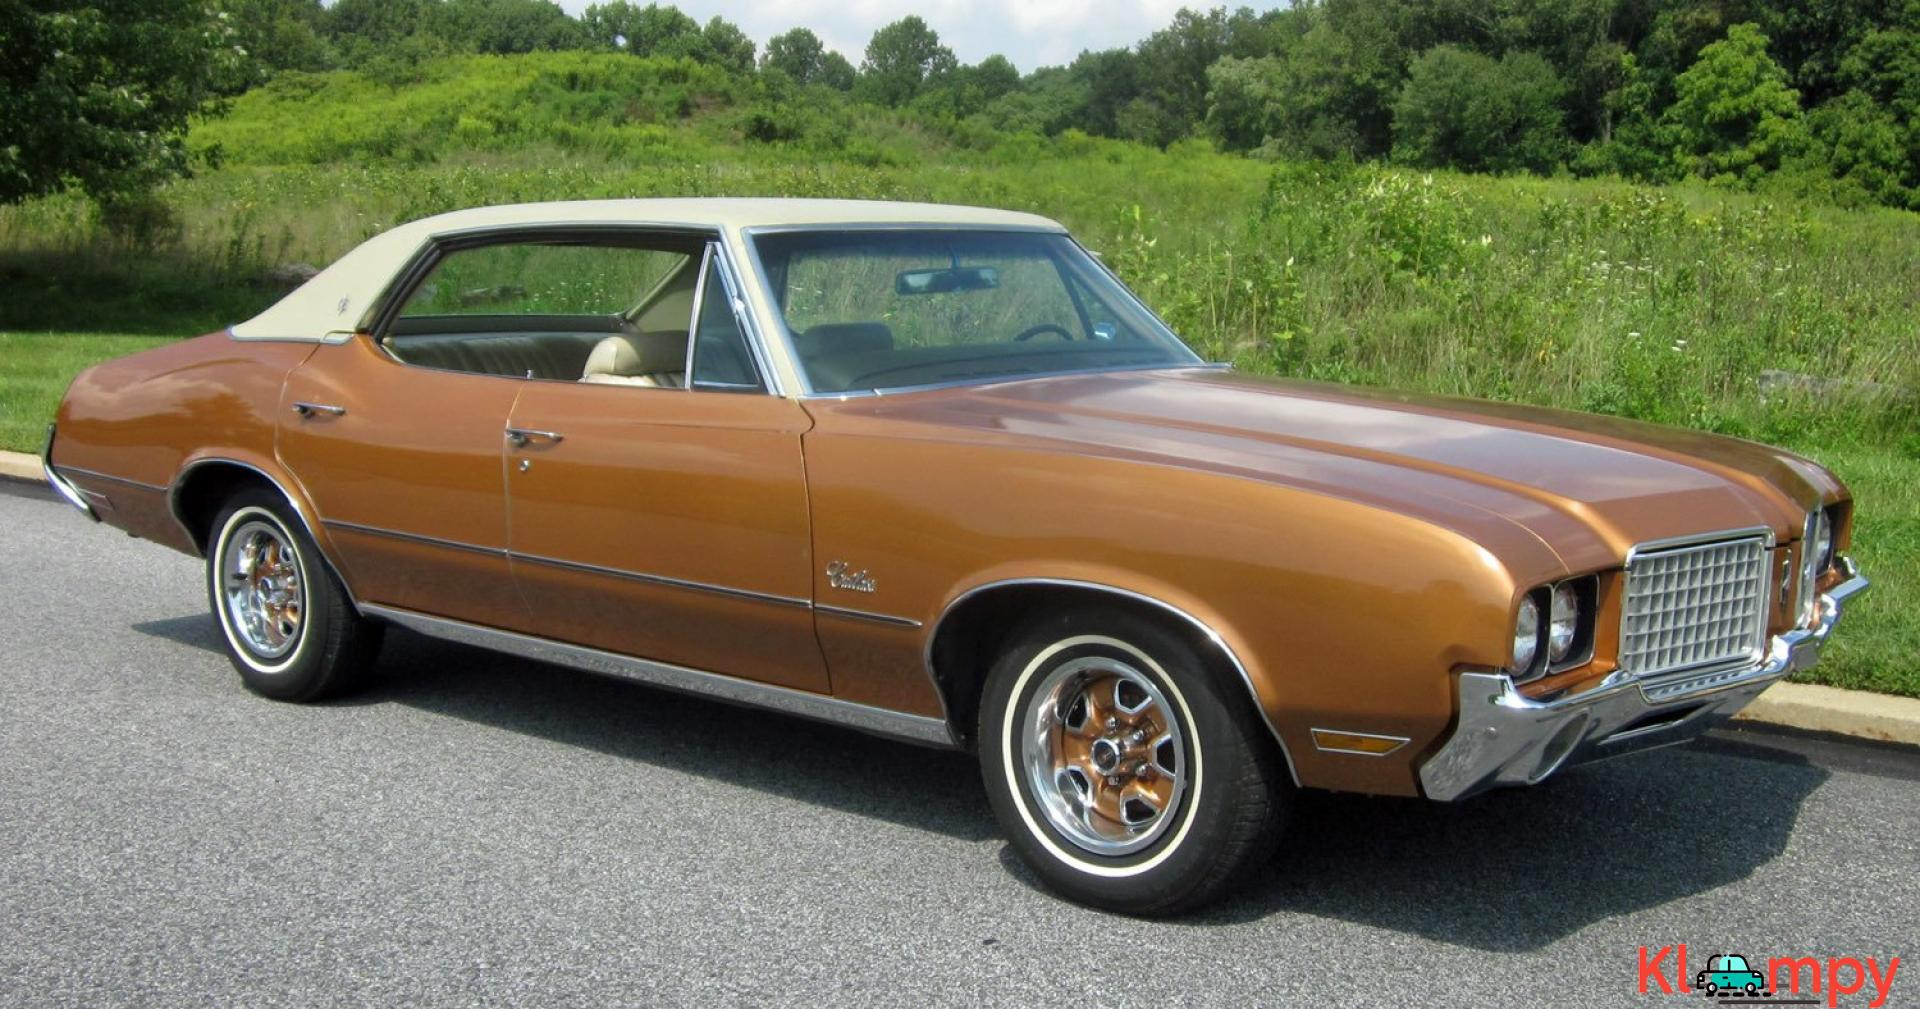 1972 Oldsmobile Cutlass Sport Sedan V8 - 5/20